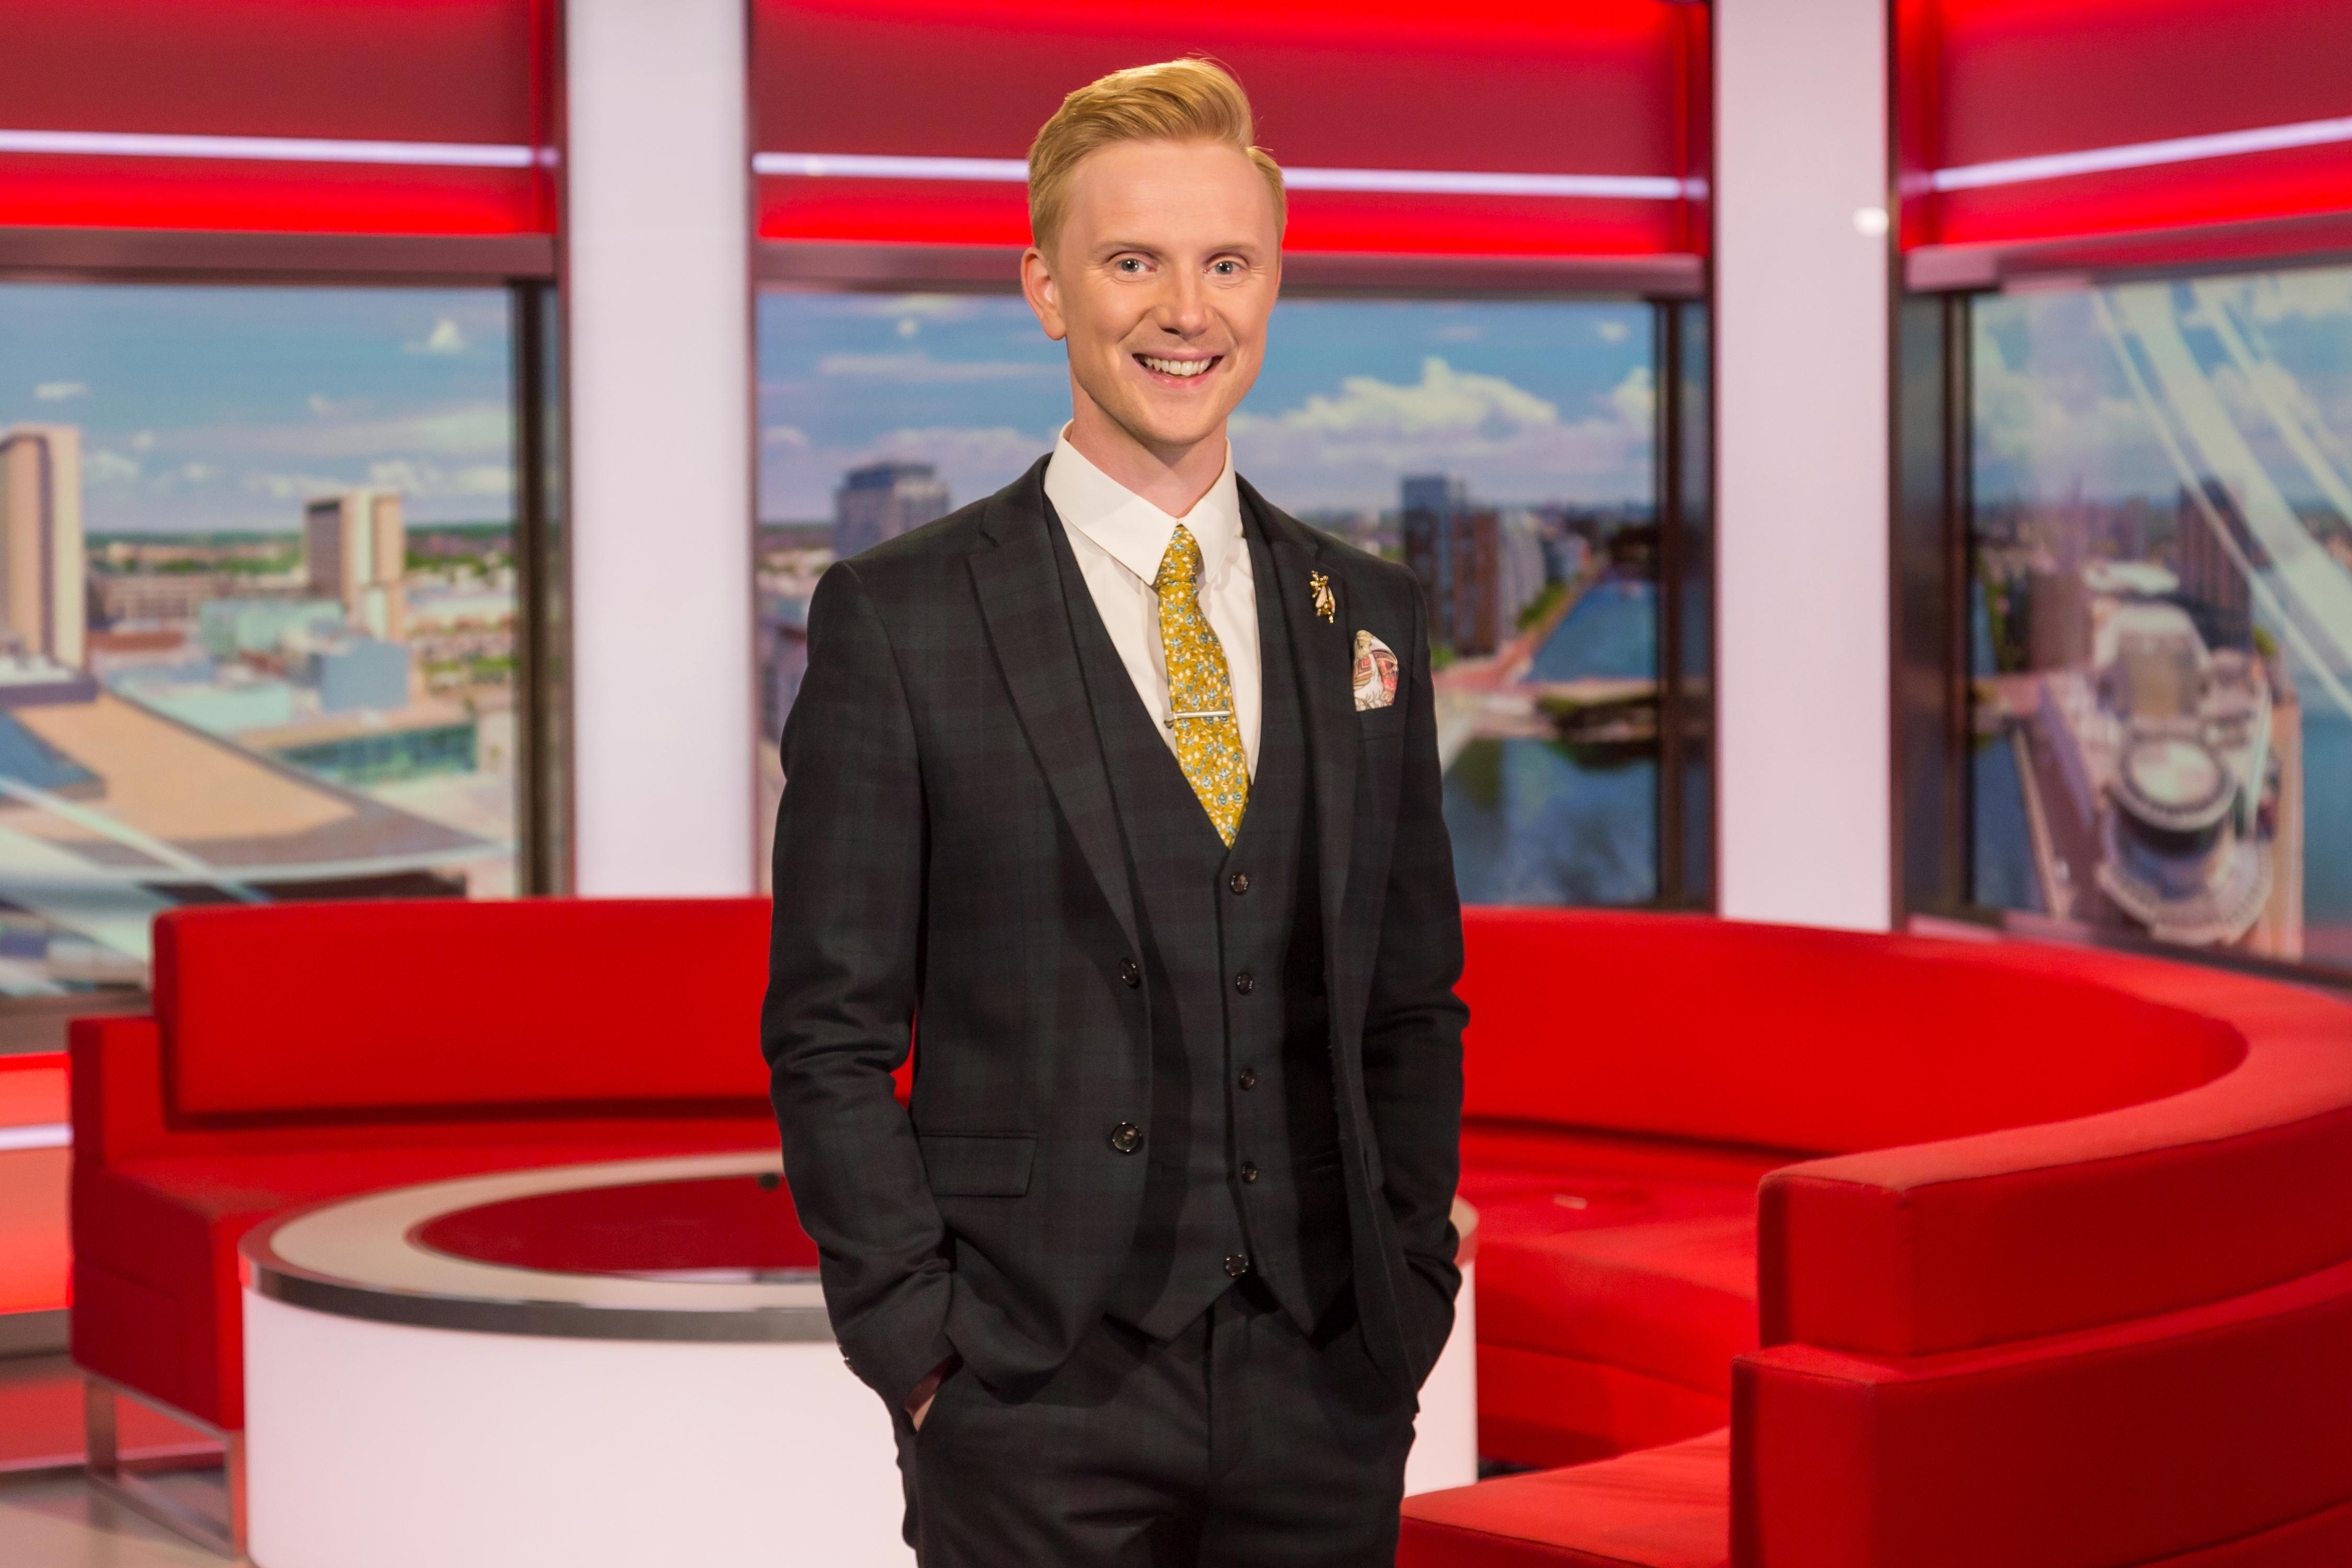 Welsh weatherman drums theme tune after presenting forecast